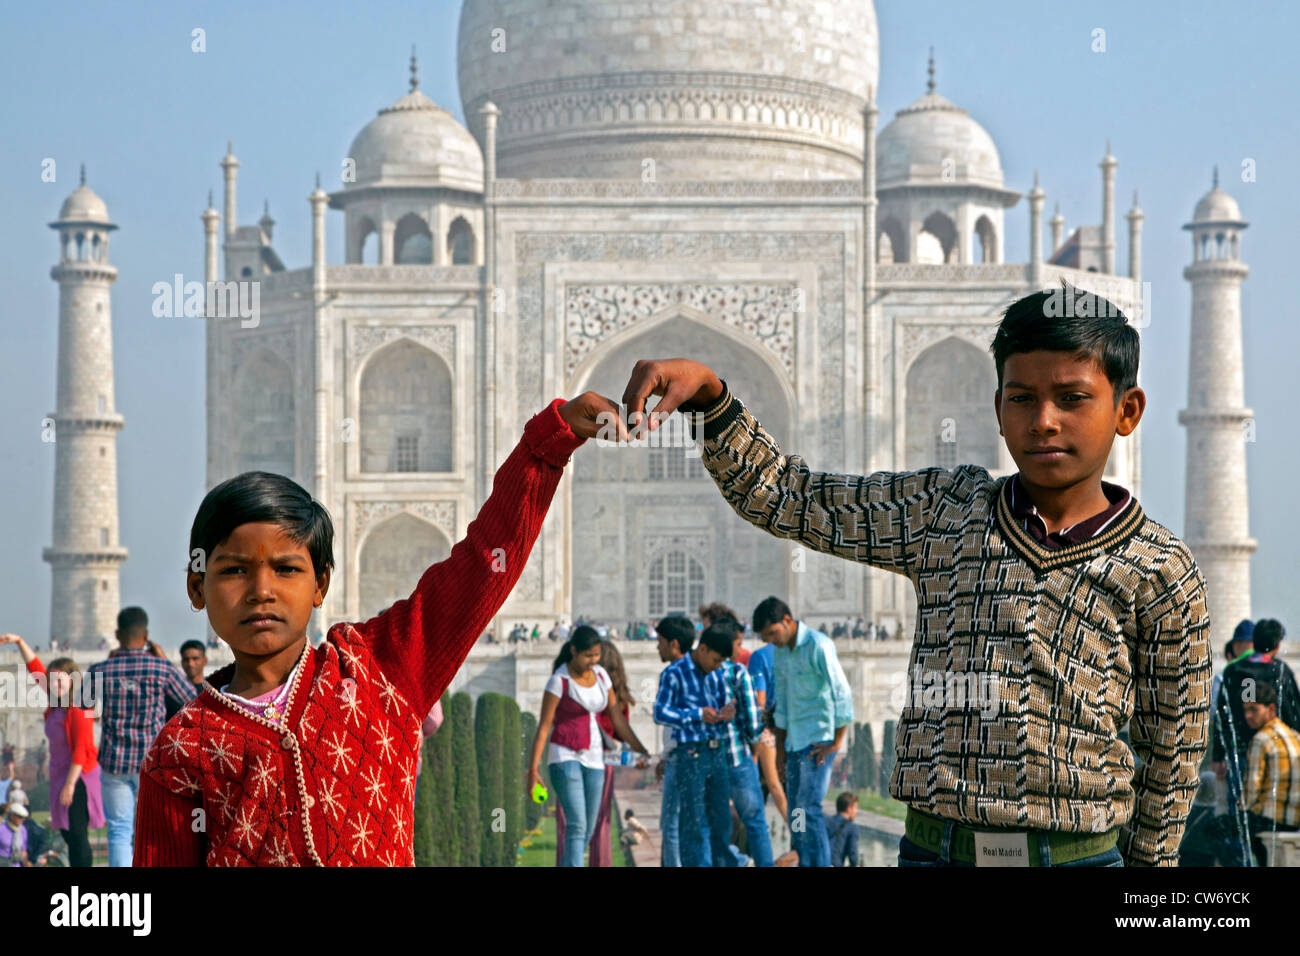 Indian children posing in front of the Taj Mahal, white marble palace in Agra, Uttar Pradesh, India - Stock Image